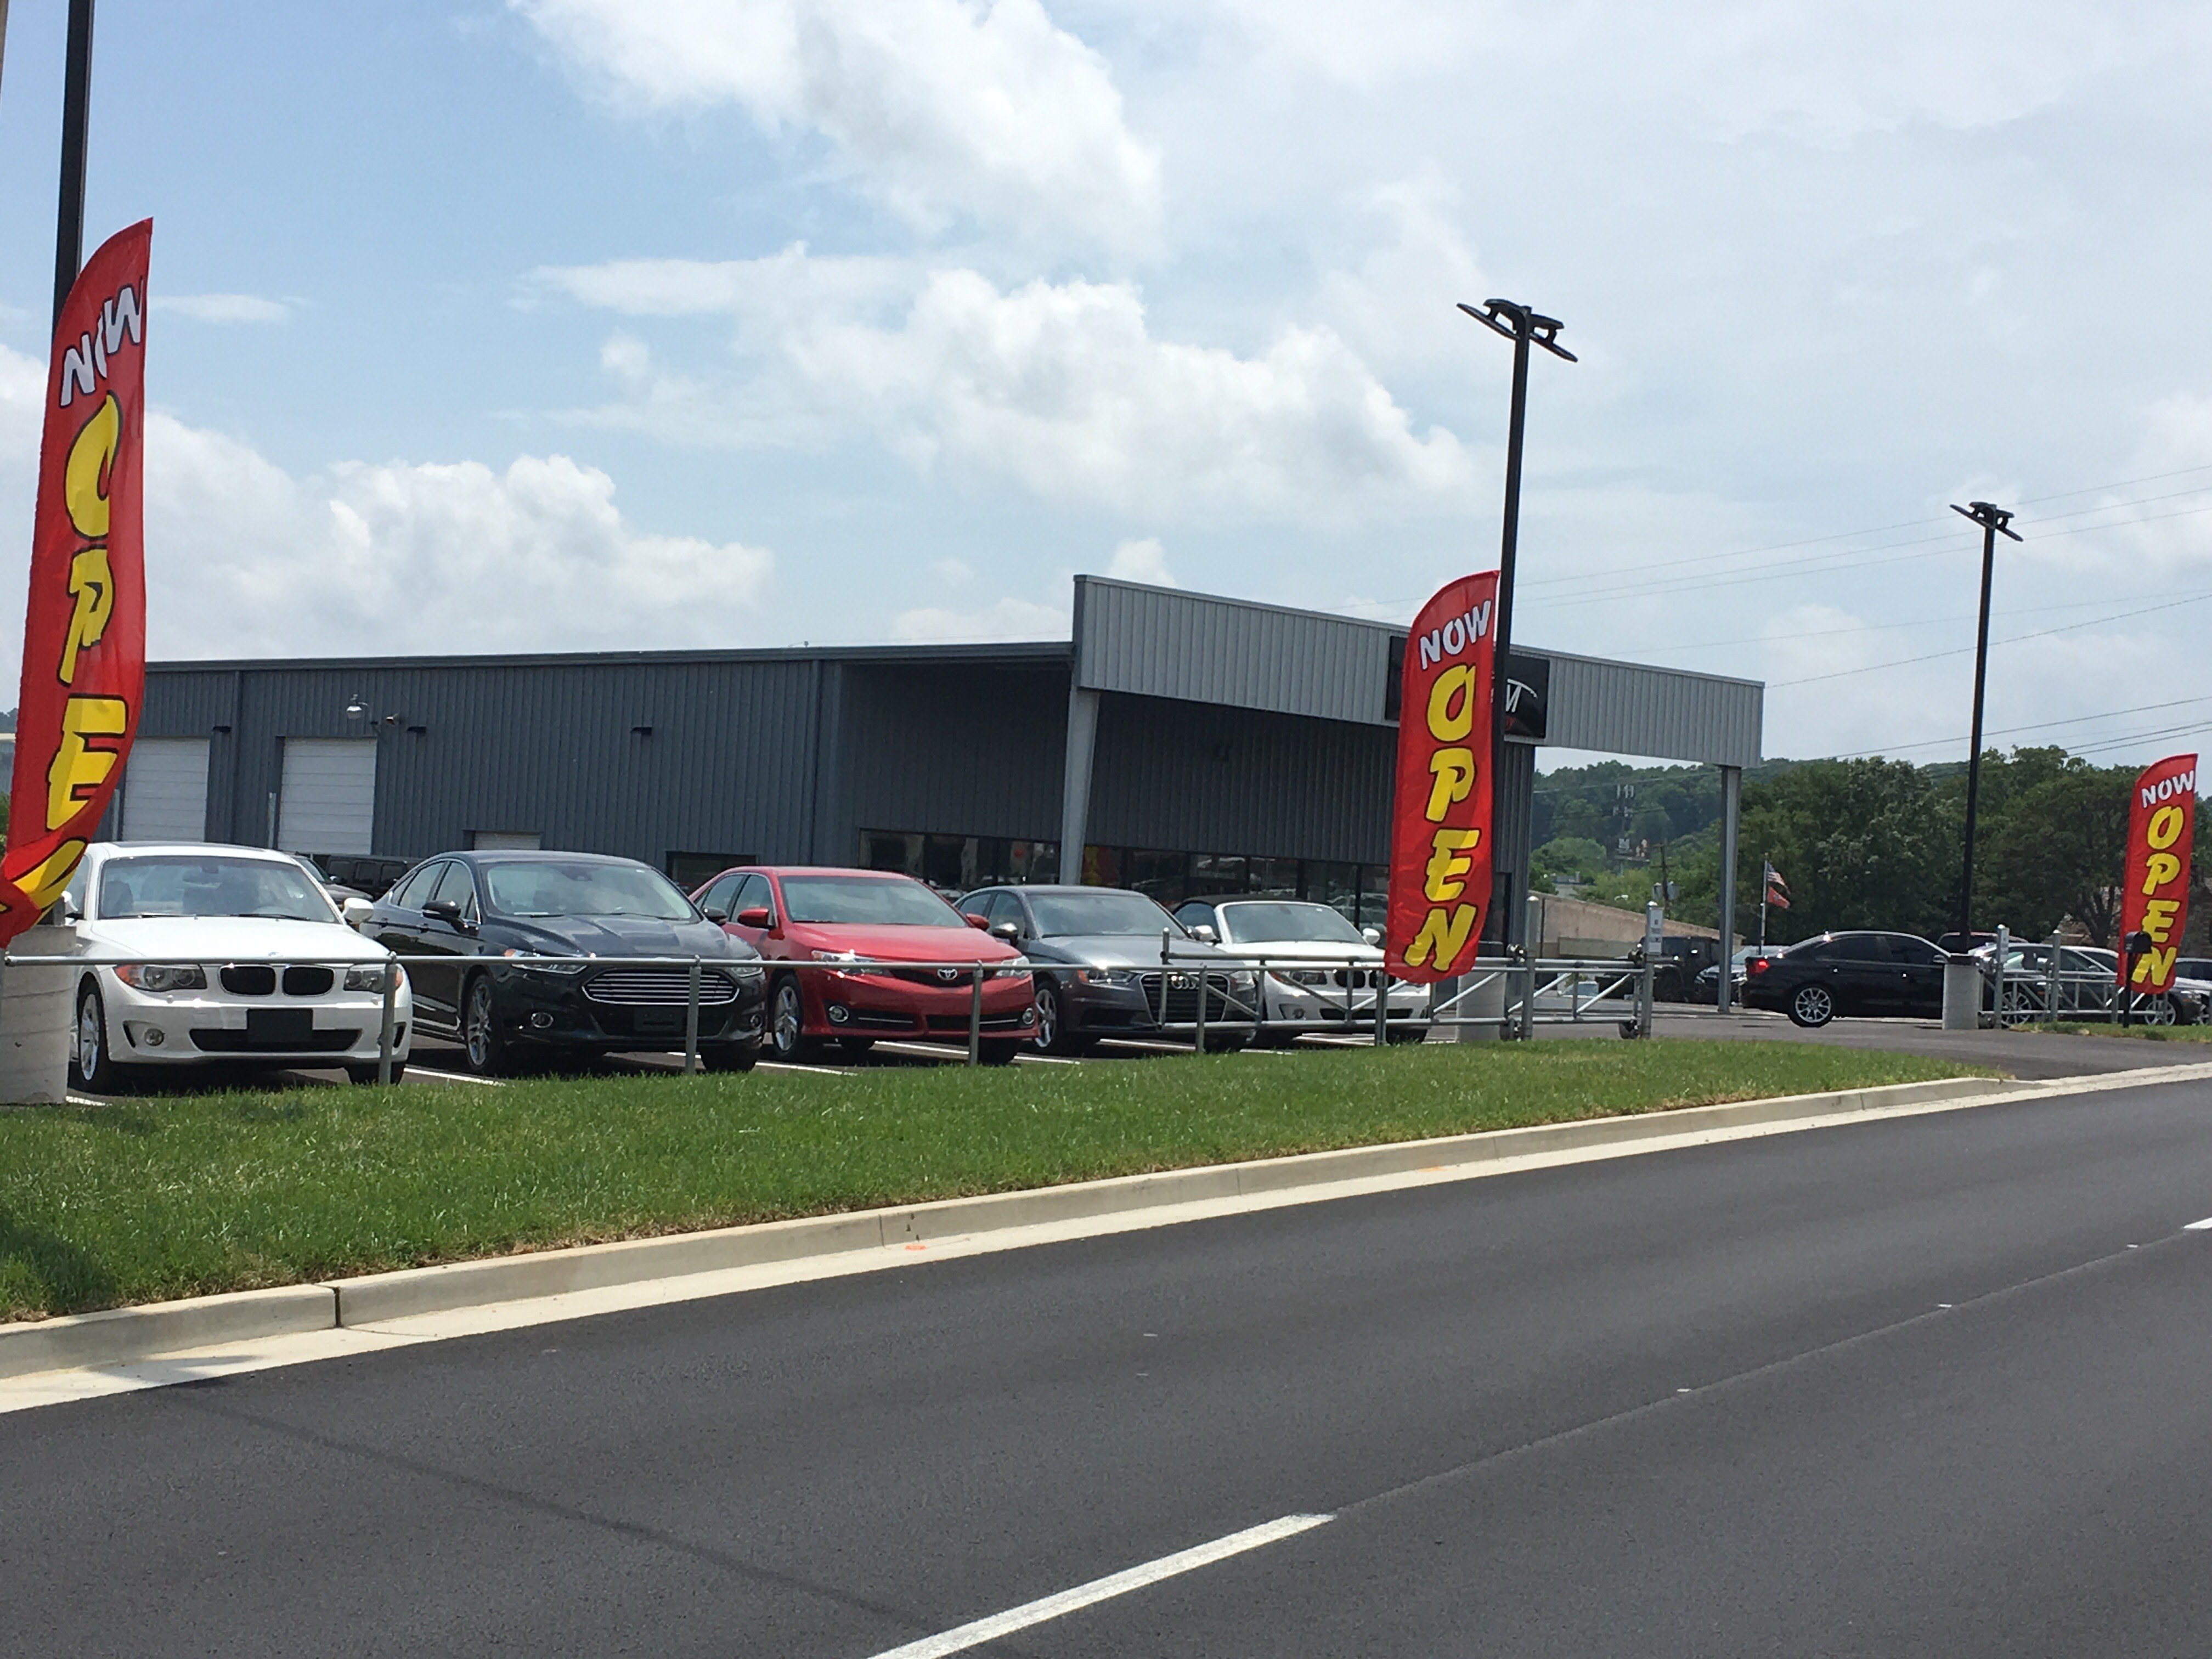 wel e to our used luxury car dealership knoxville tn although graham motor pany was just opened in january of 2017 we have over 40 years of bined